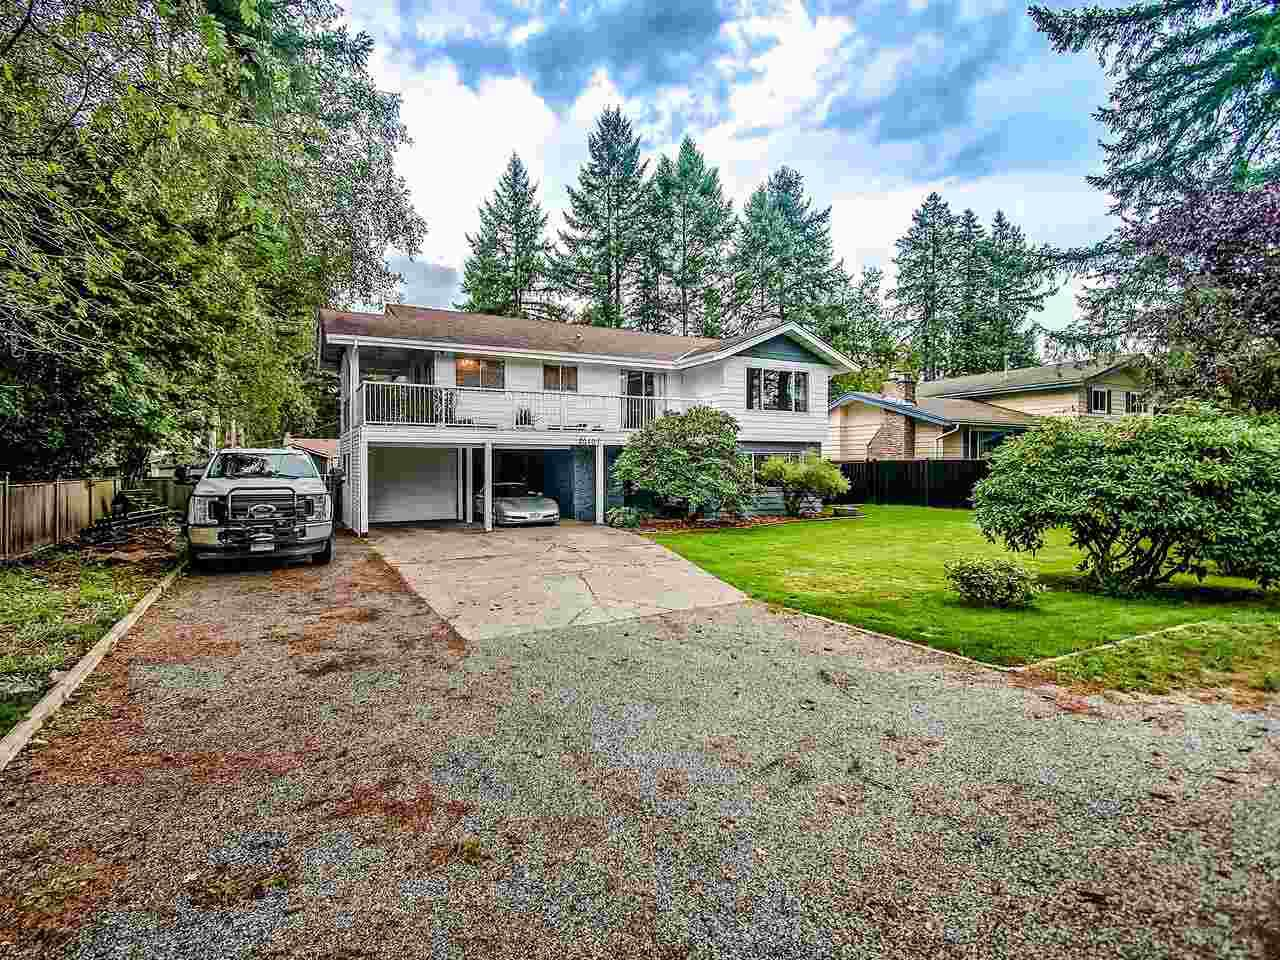 """Main Photo: 20101 42 Avenue in Langley: Brookswood Langley House for sale in """"Brookswood"""" : MLS®# R2509931"""